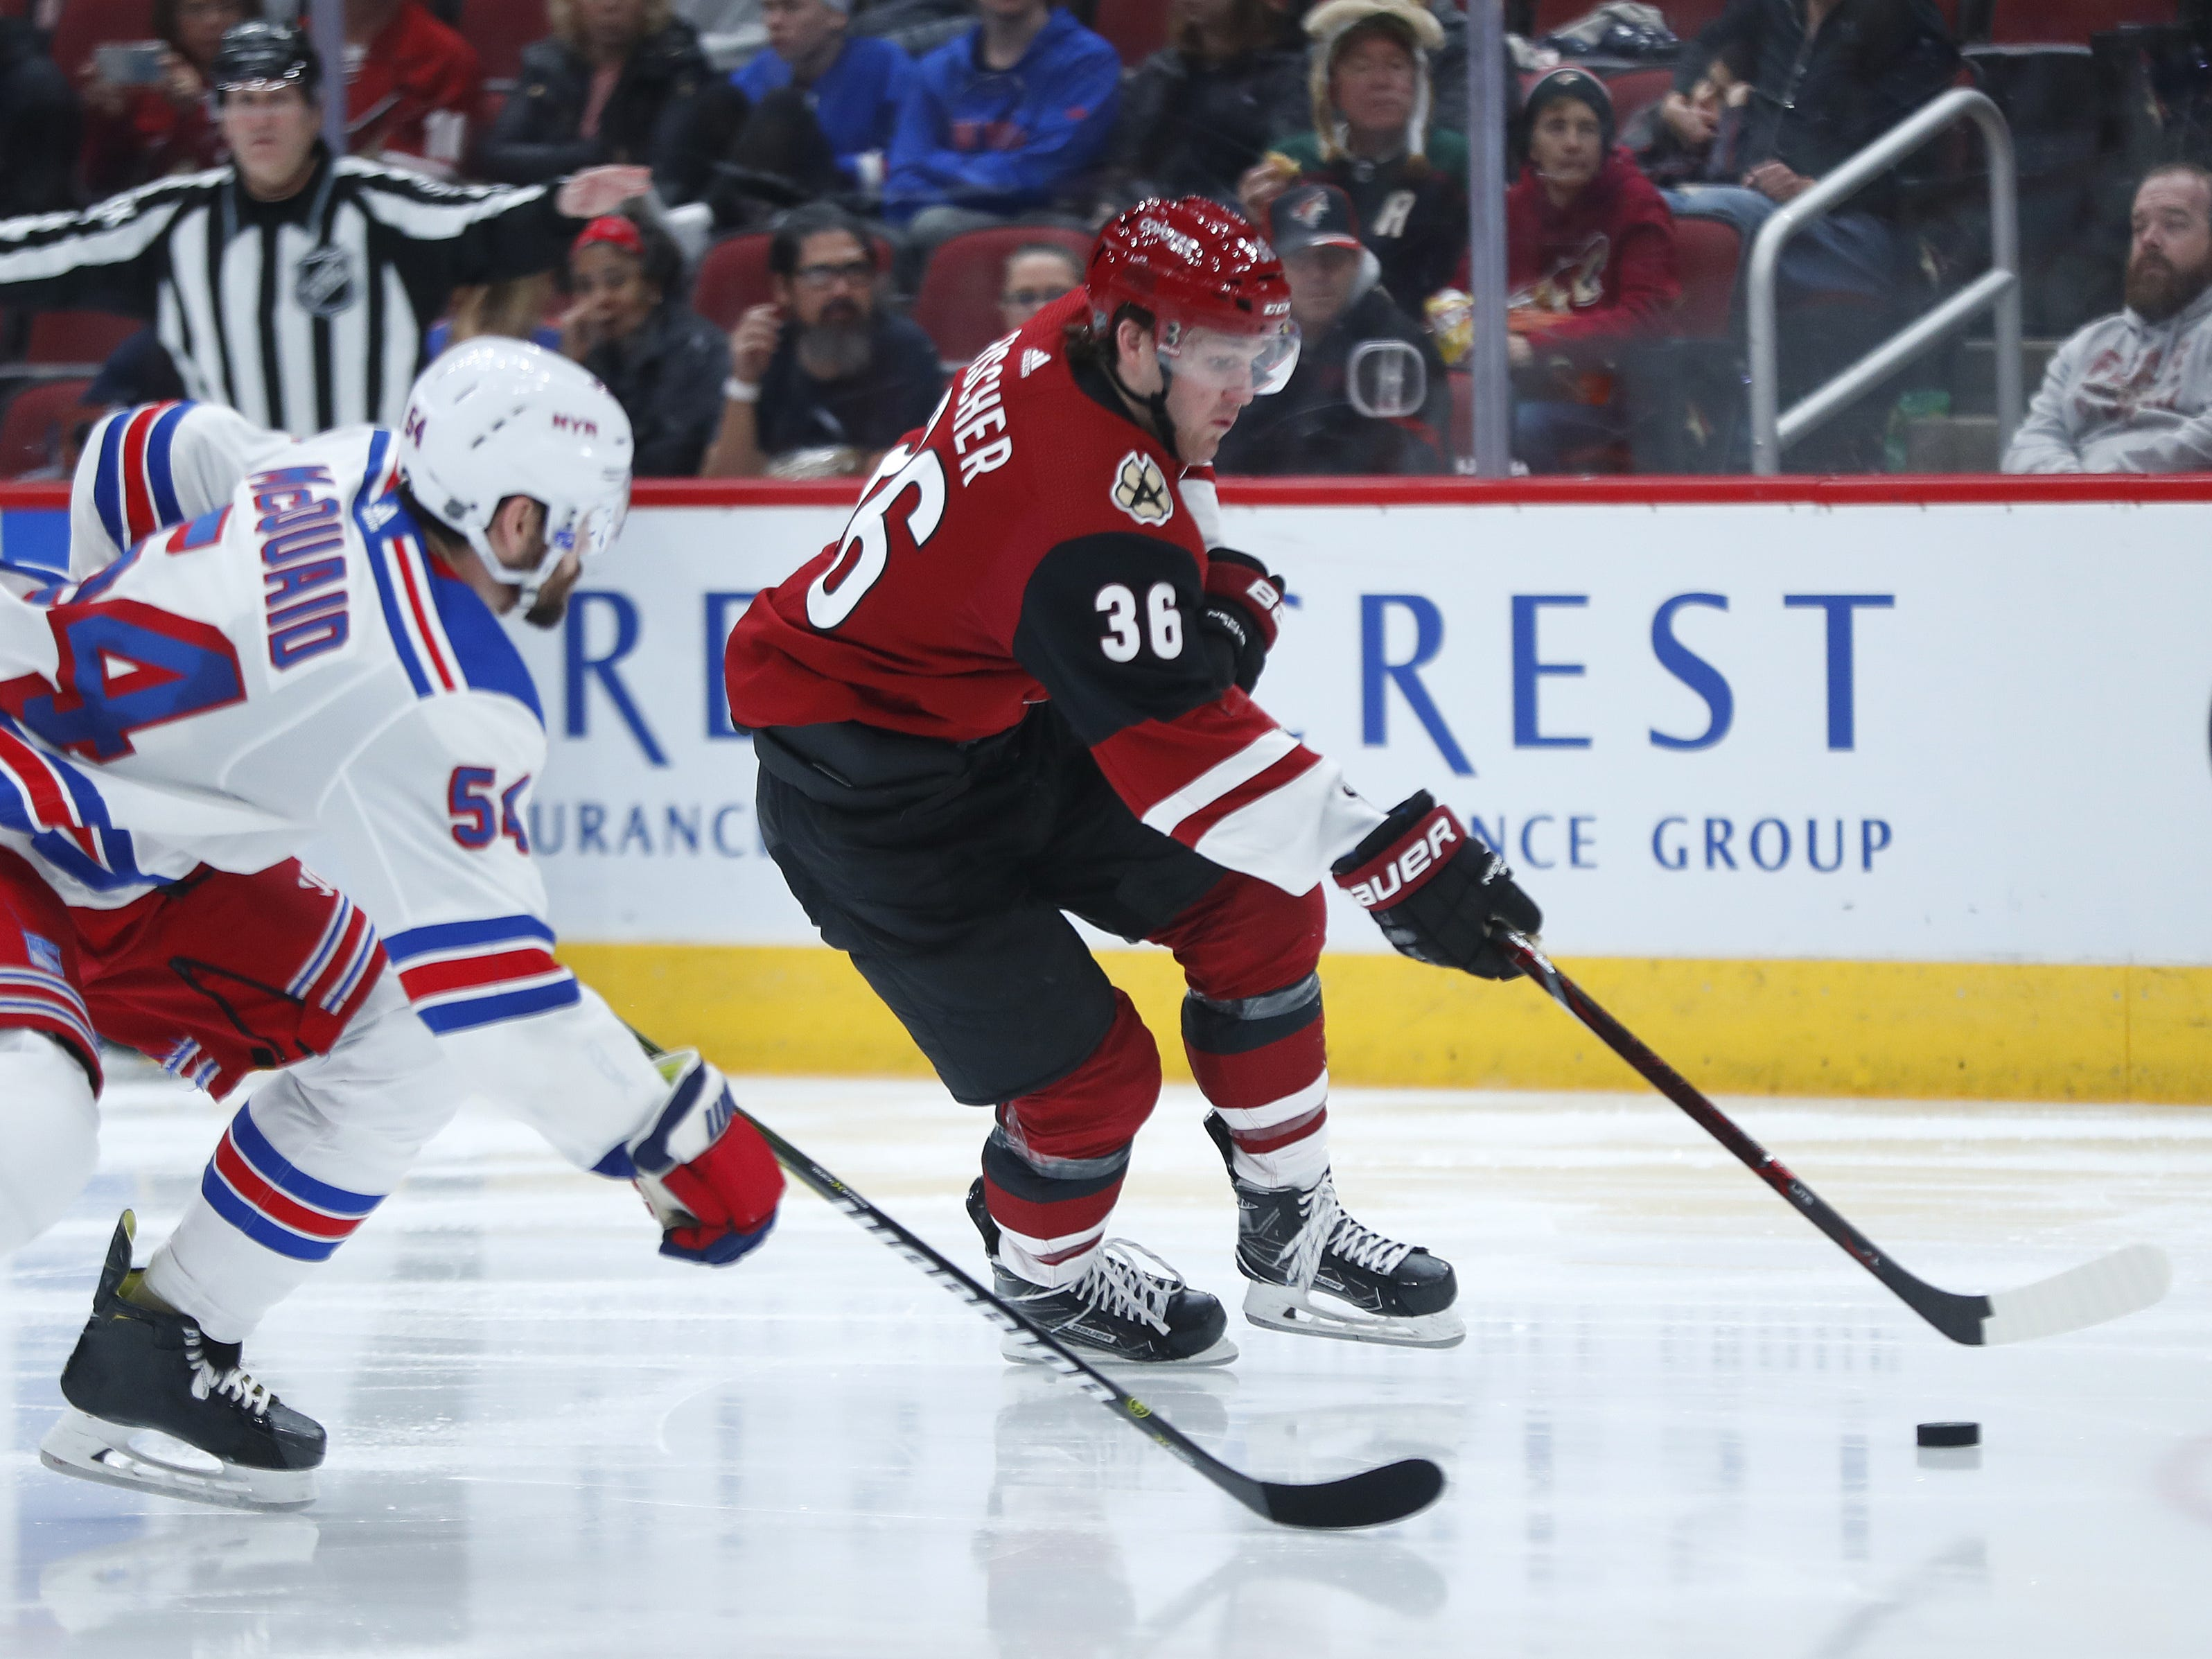 Coyotes' Christian Fischer (36) gathers the puck for a shot against Rangers' Adam McQuaid (54) during the second period at Gila River Arena in Glendale, Ariz. on January 6, 2019.